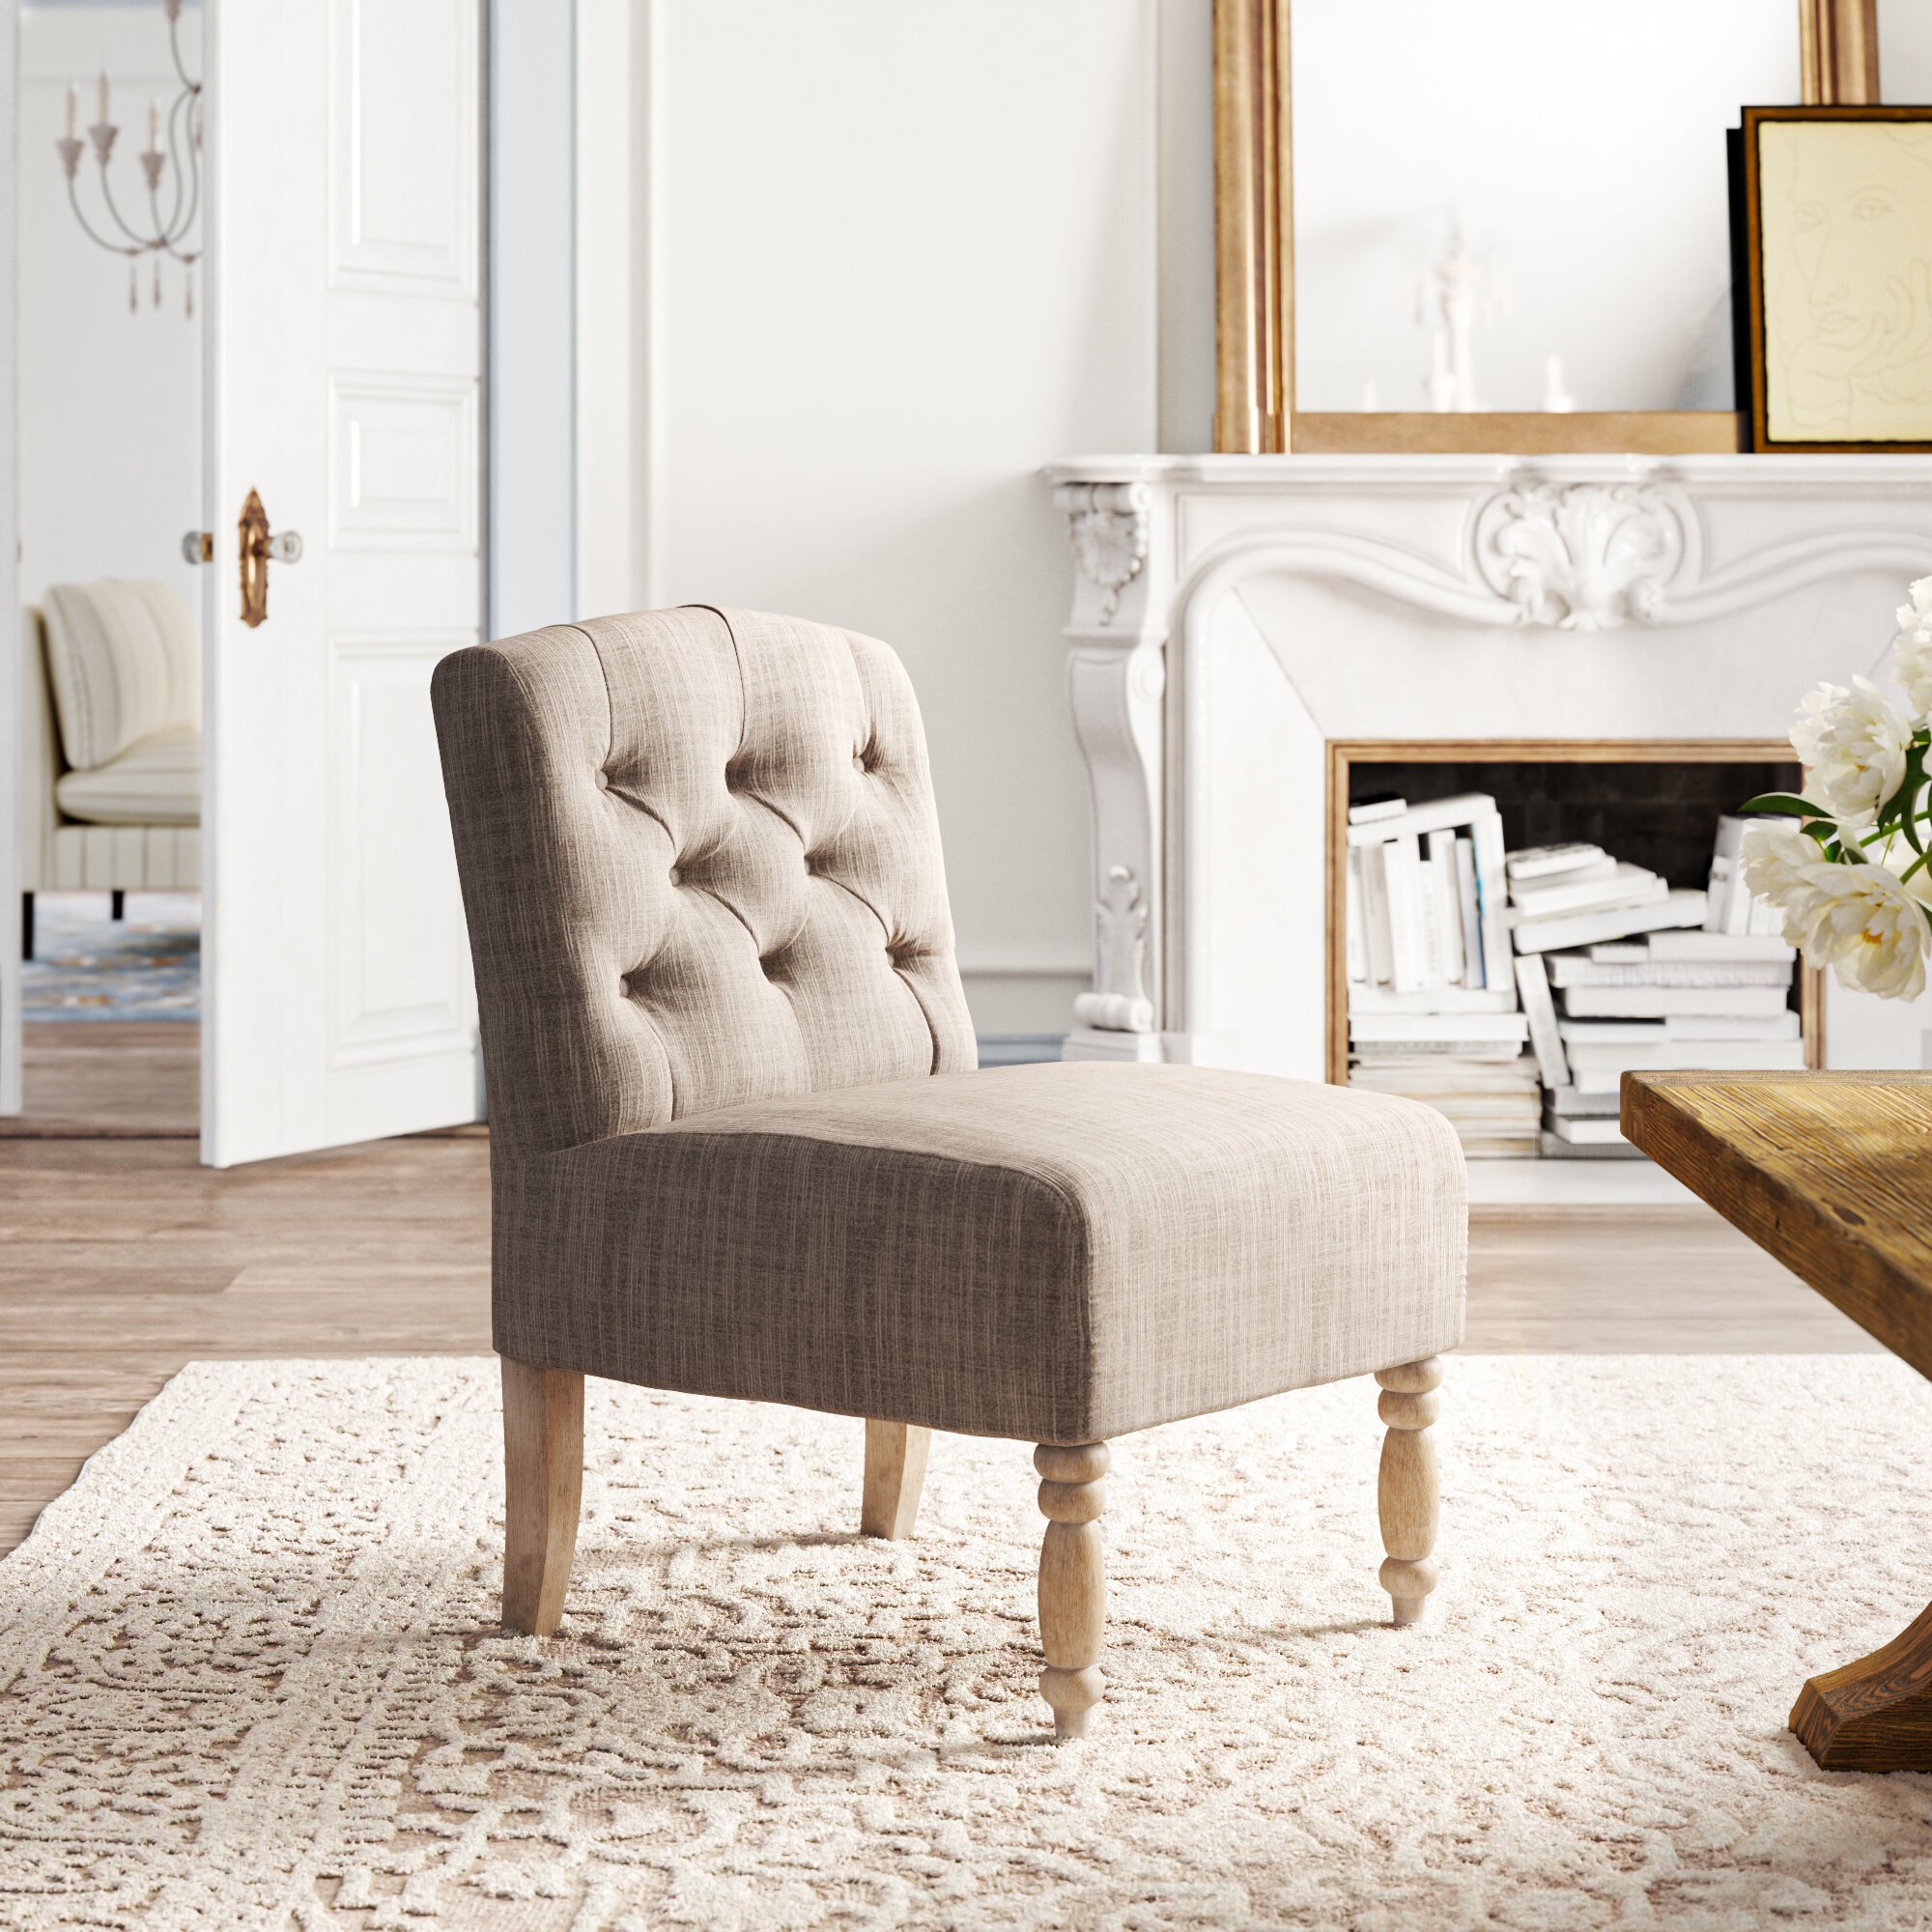 Slipper Chairs | Wayfair Throughout Alush Accent Slipper Chairs (Set Of 2) (View 11 of 15)